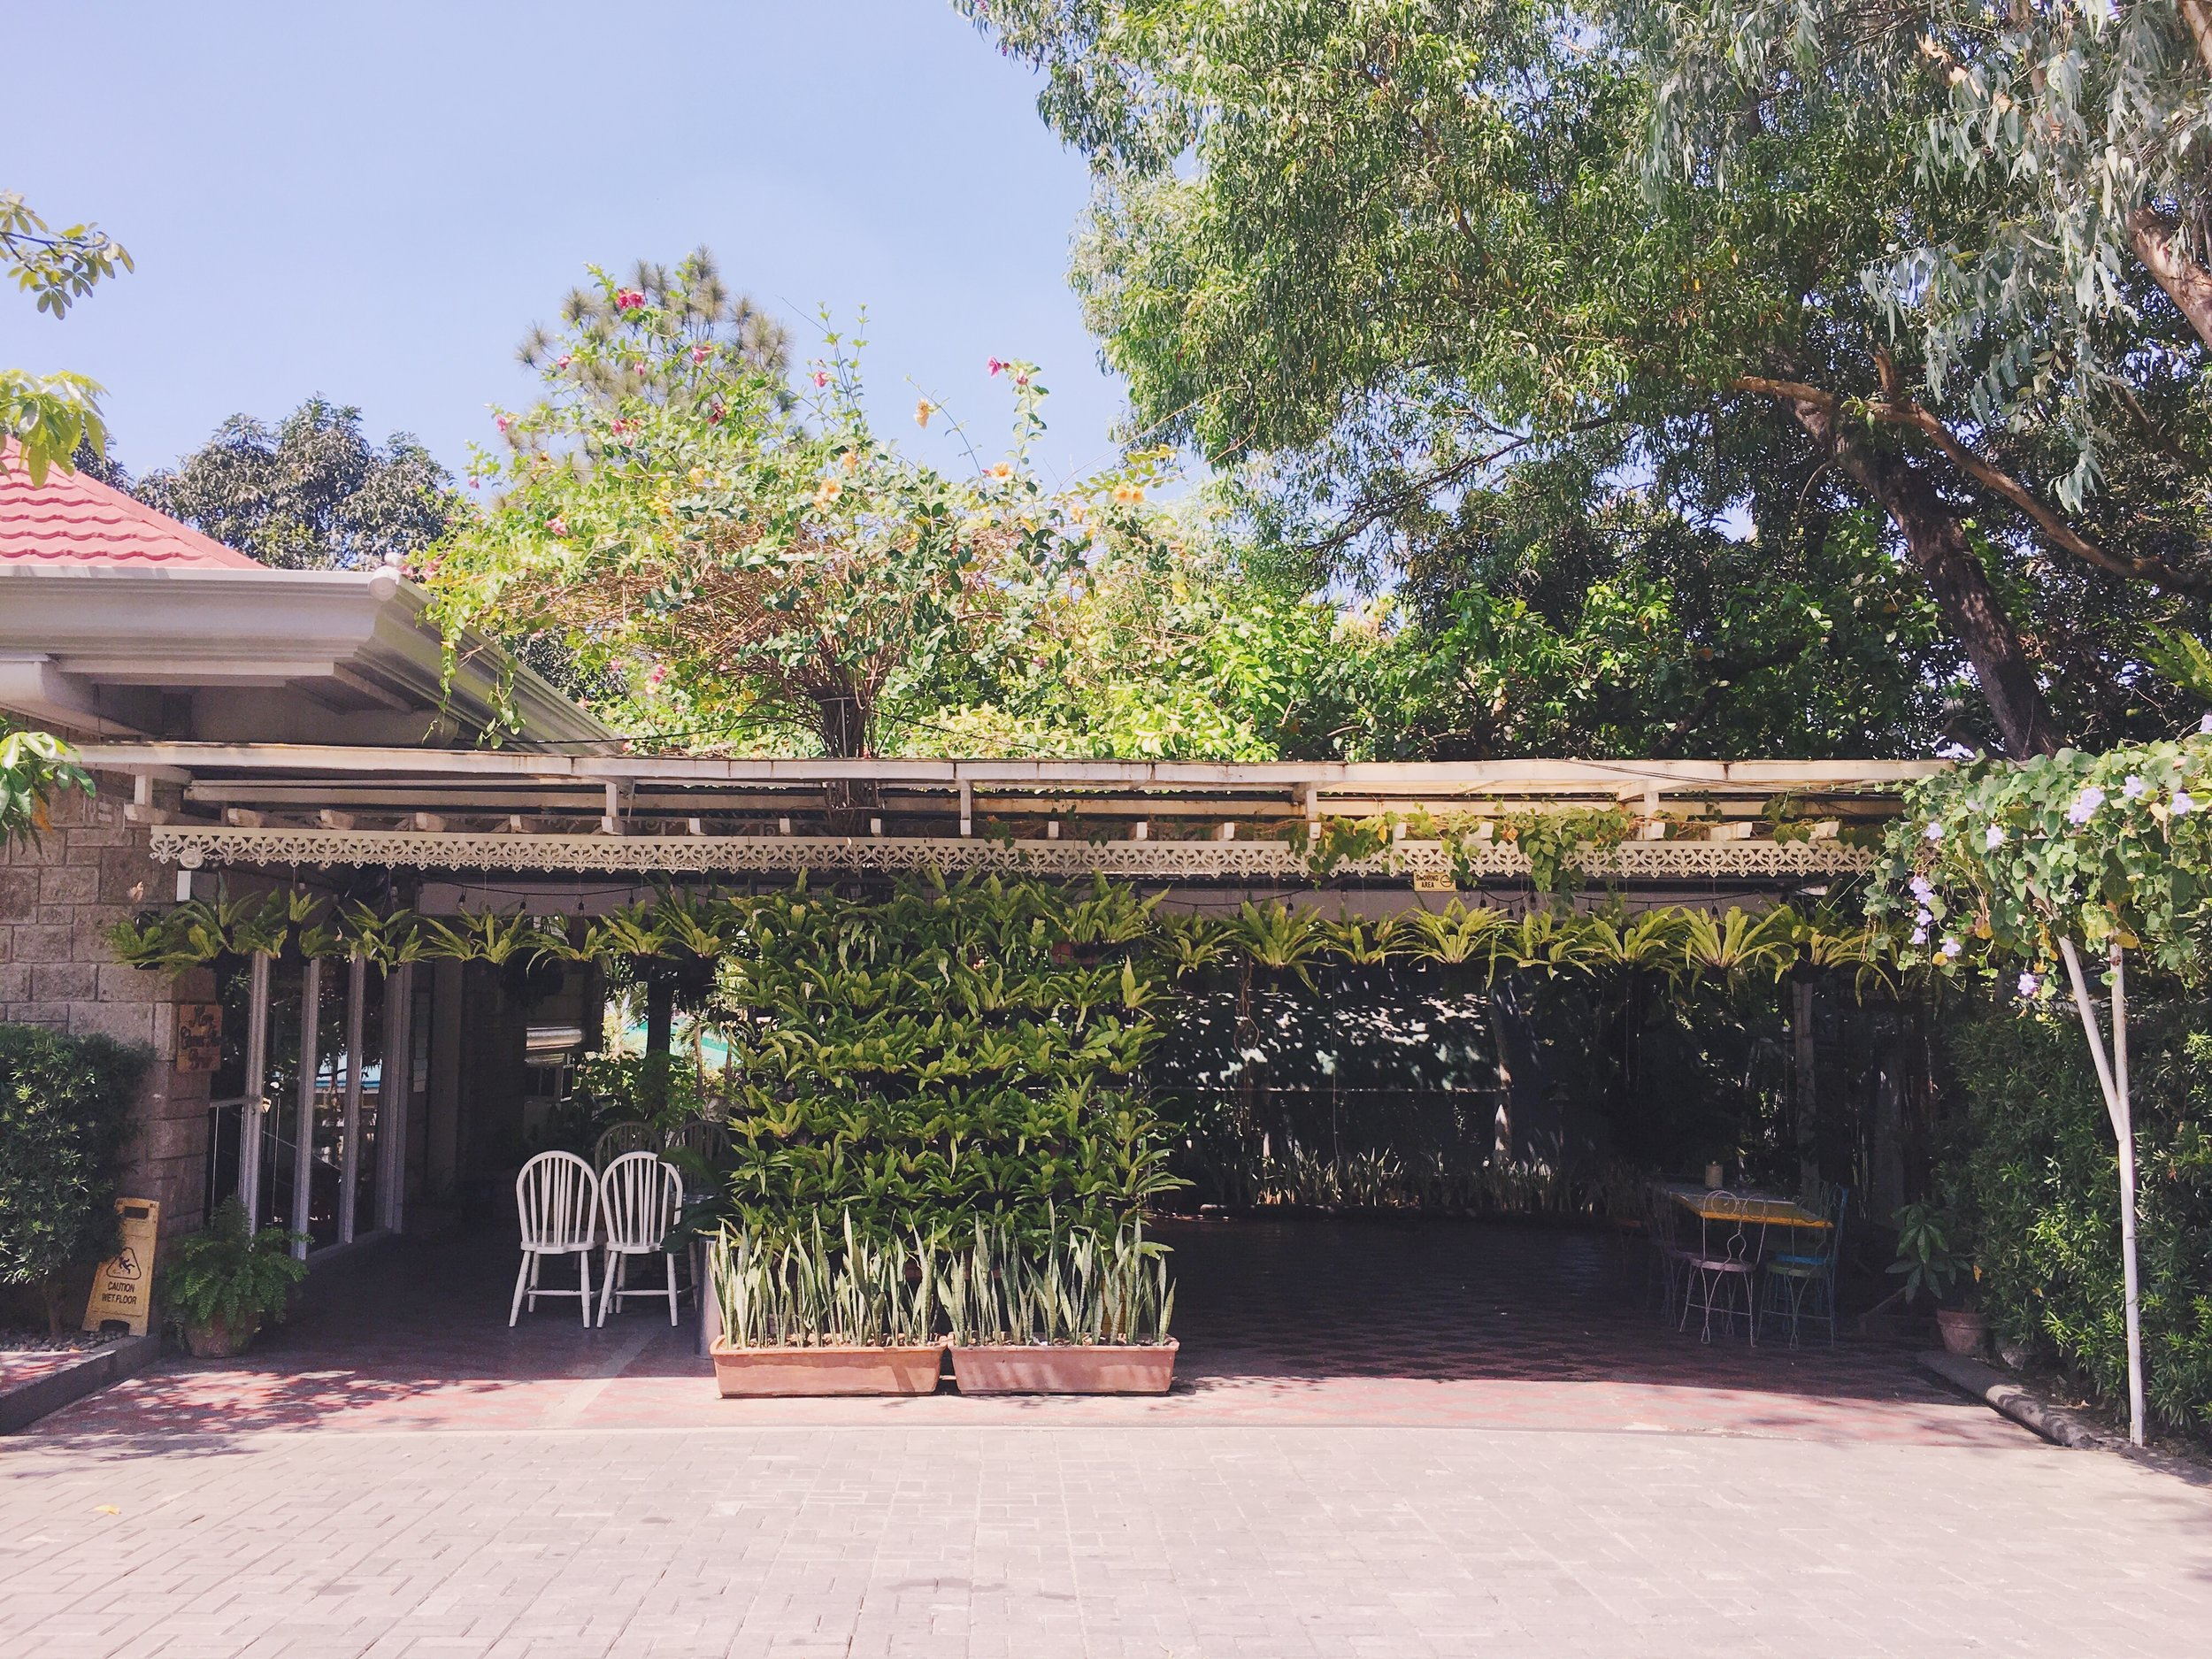 Cafe in Antipolo: Eggs for Breakfast Cafe 9